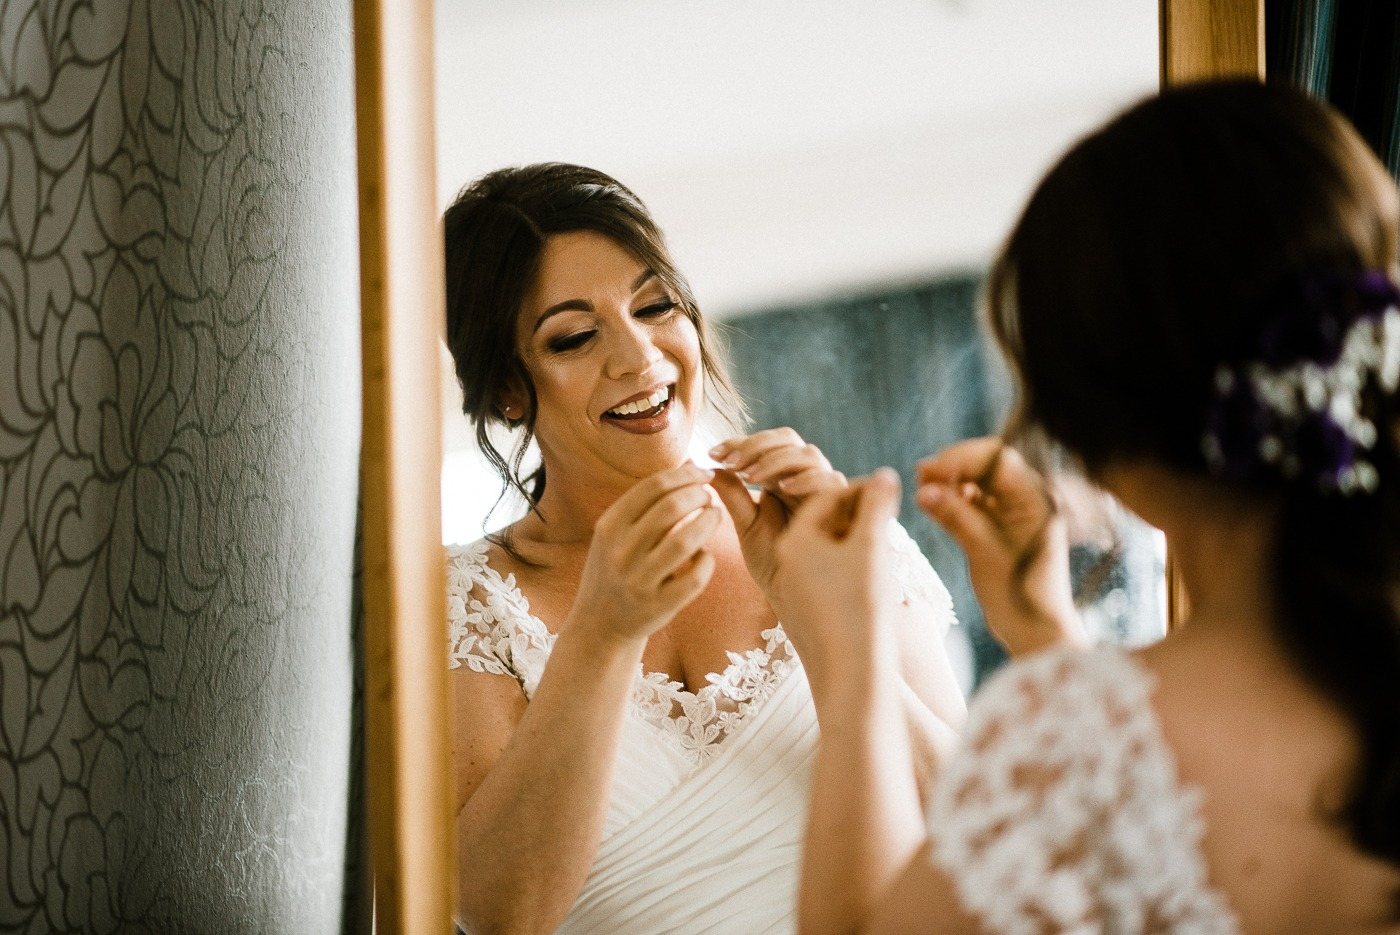 A person brushing the teeth in front of a mirror posing for the camera